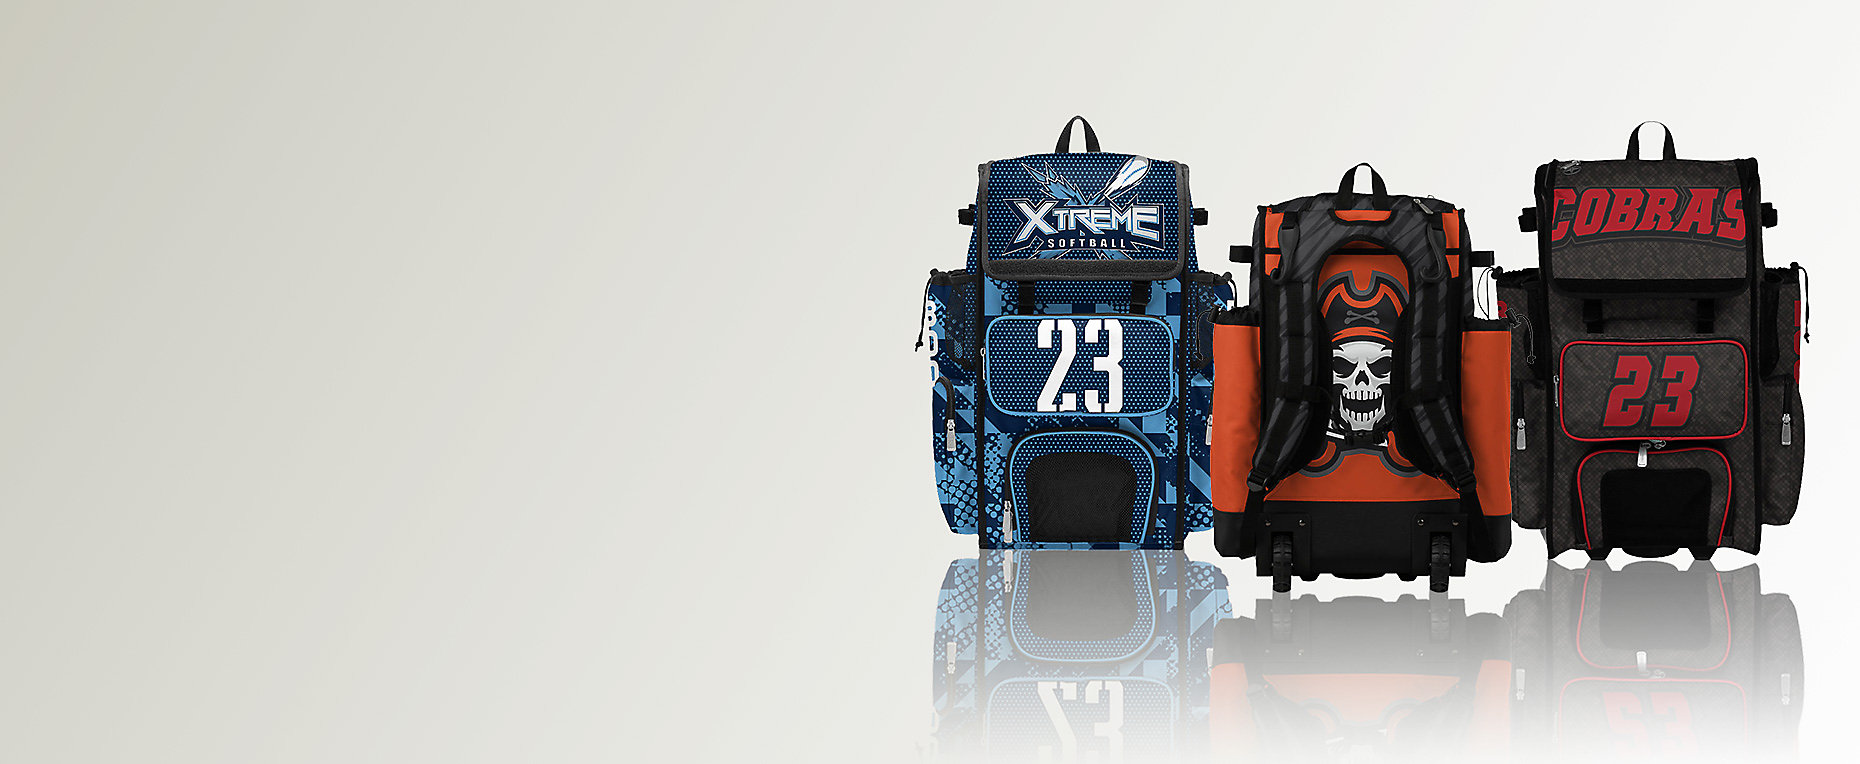 Custom Superpack Back Pack, Custom Superpack Hybrid Rolling Back Pack, Custom Superpack Rolling Bat Bag